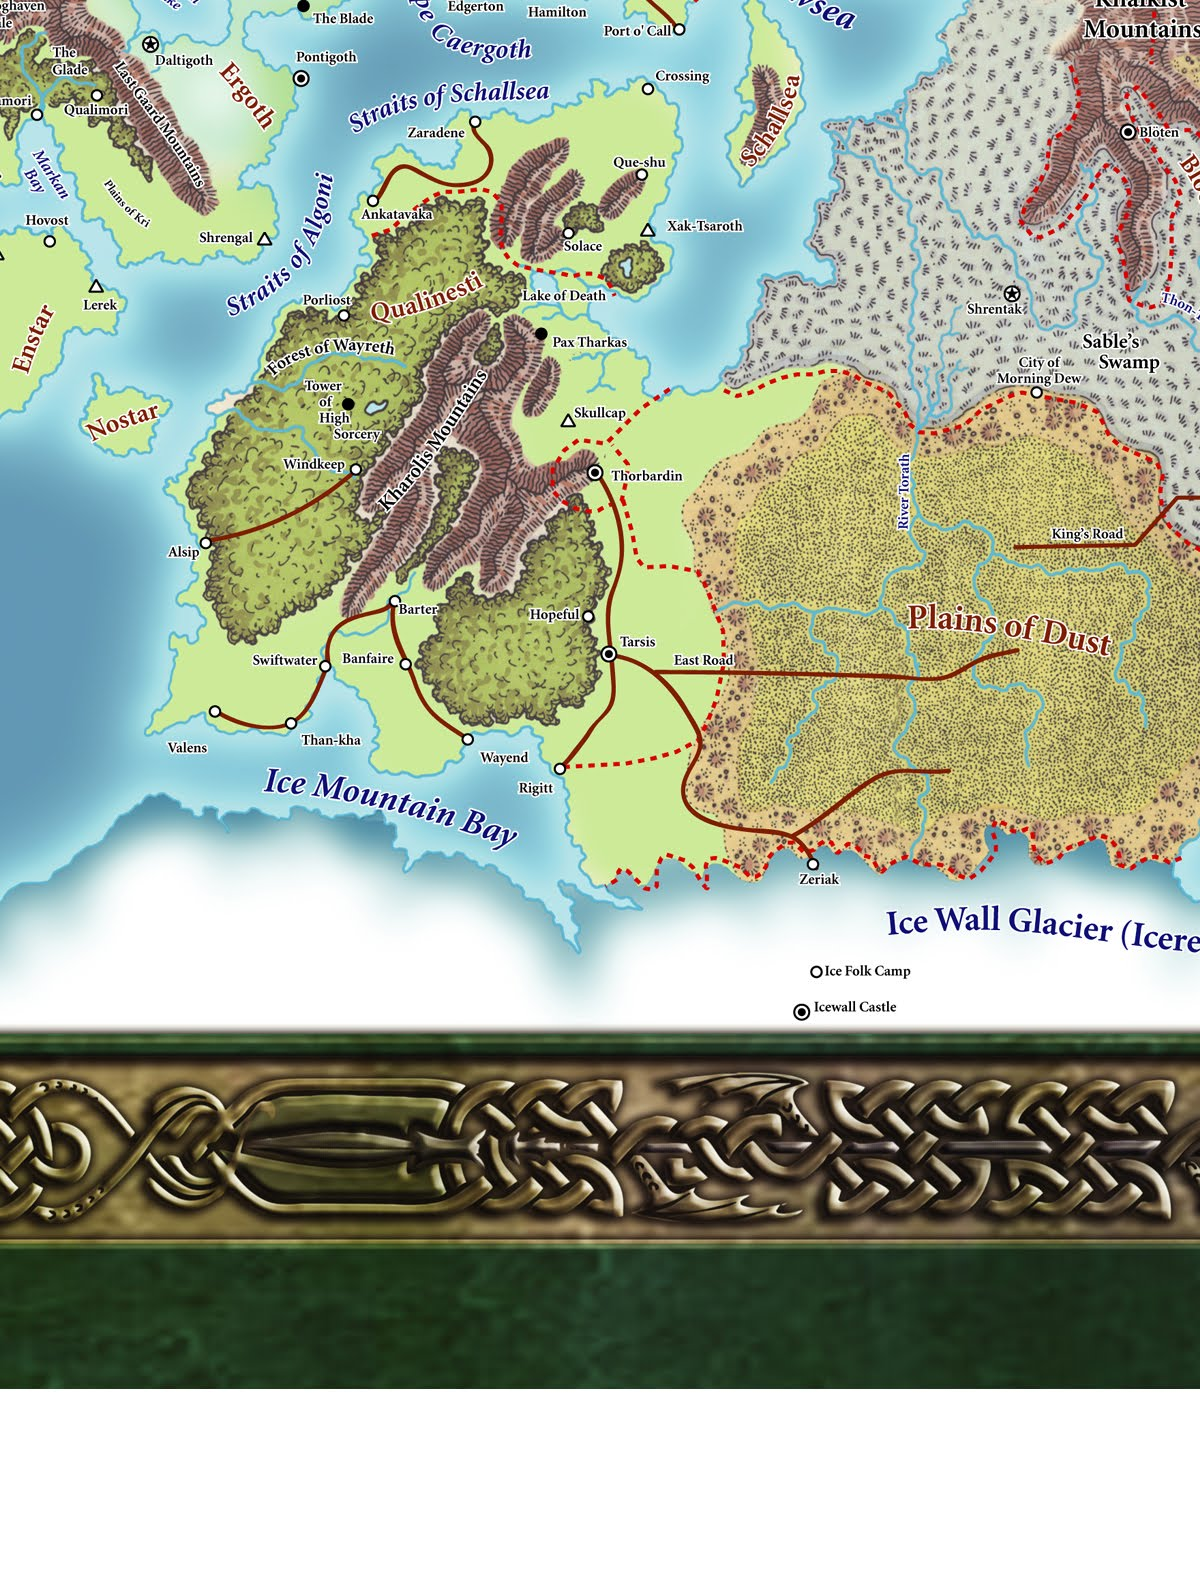 Northern Abanasinia Map - TheKrynnEffect on neverwinter map, world diplomacy map, baldur's gate map, greyhawk map, isle of dread map, athas map, glorantha map, forgotten realms map, nirn world map, norrath map, treasure map,